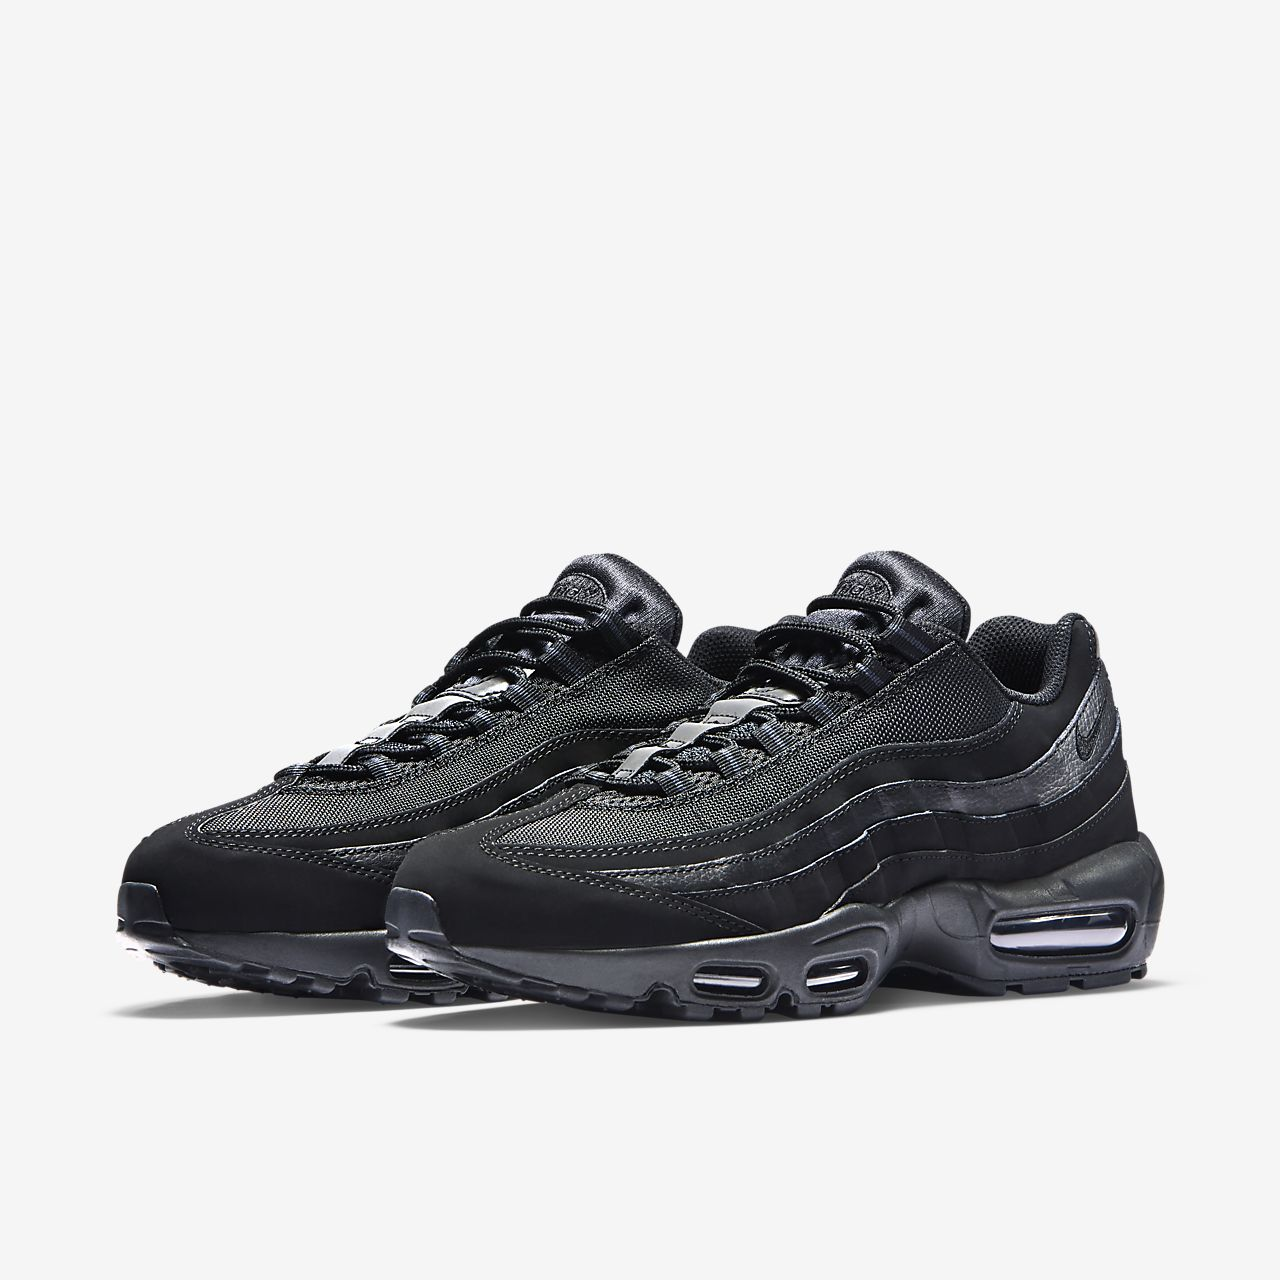 los angeles aa7af f60bf ... Nike Air Max 95 Men s Shoe